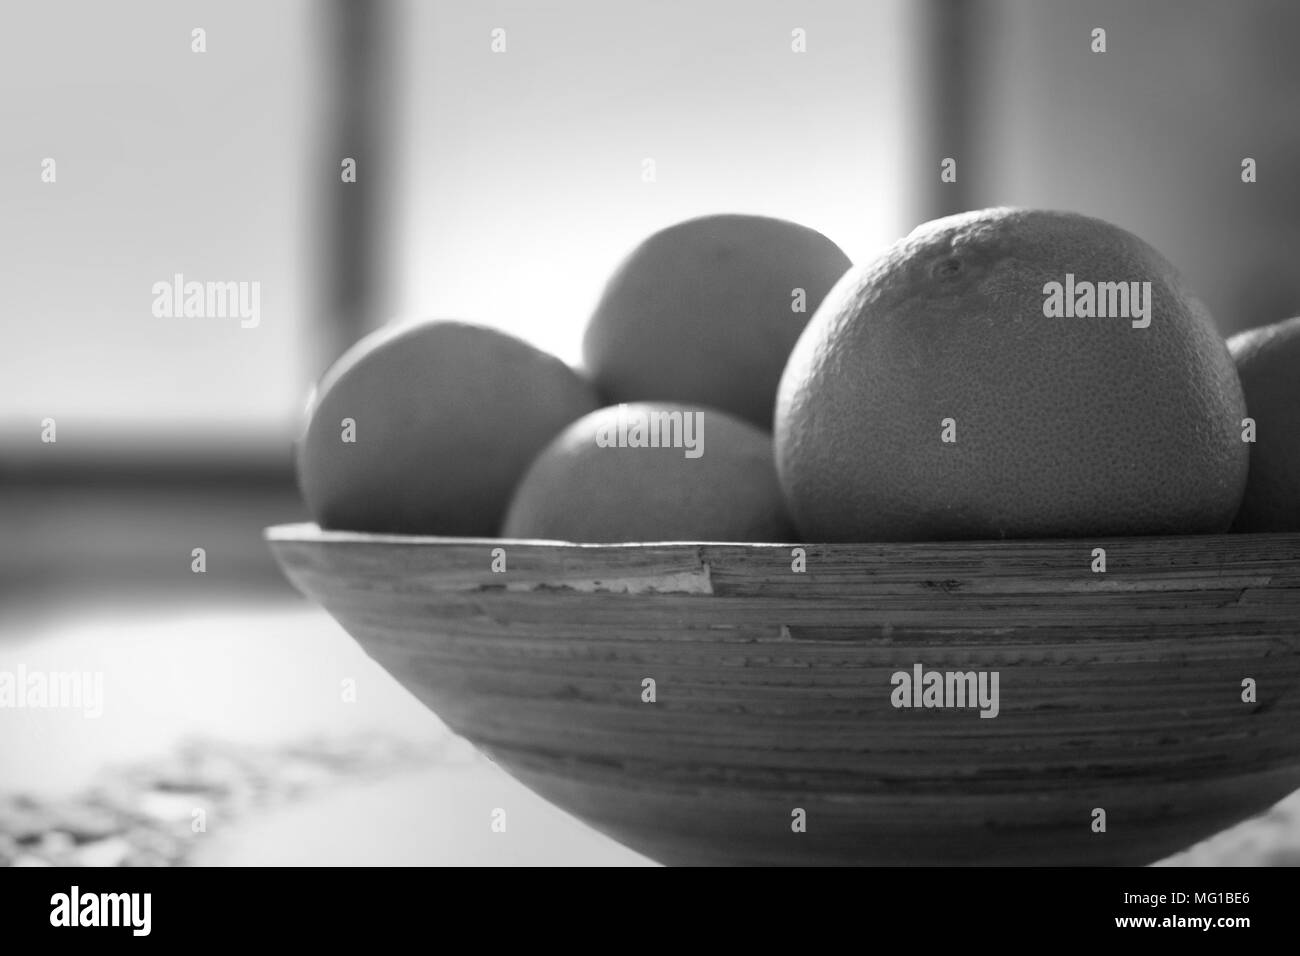 Close up of oranges with blurred background in black and white. - Stock Image